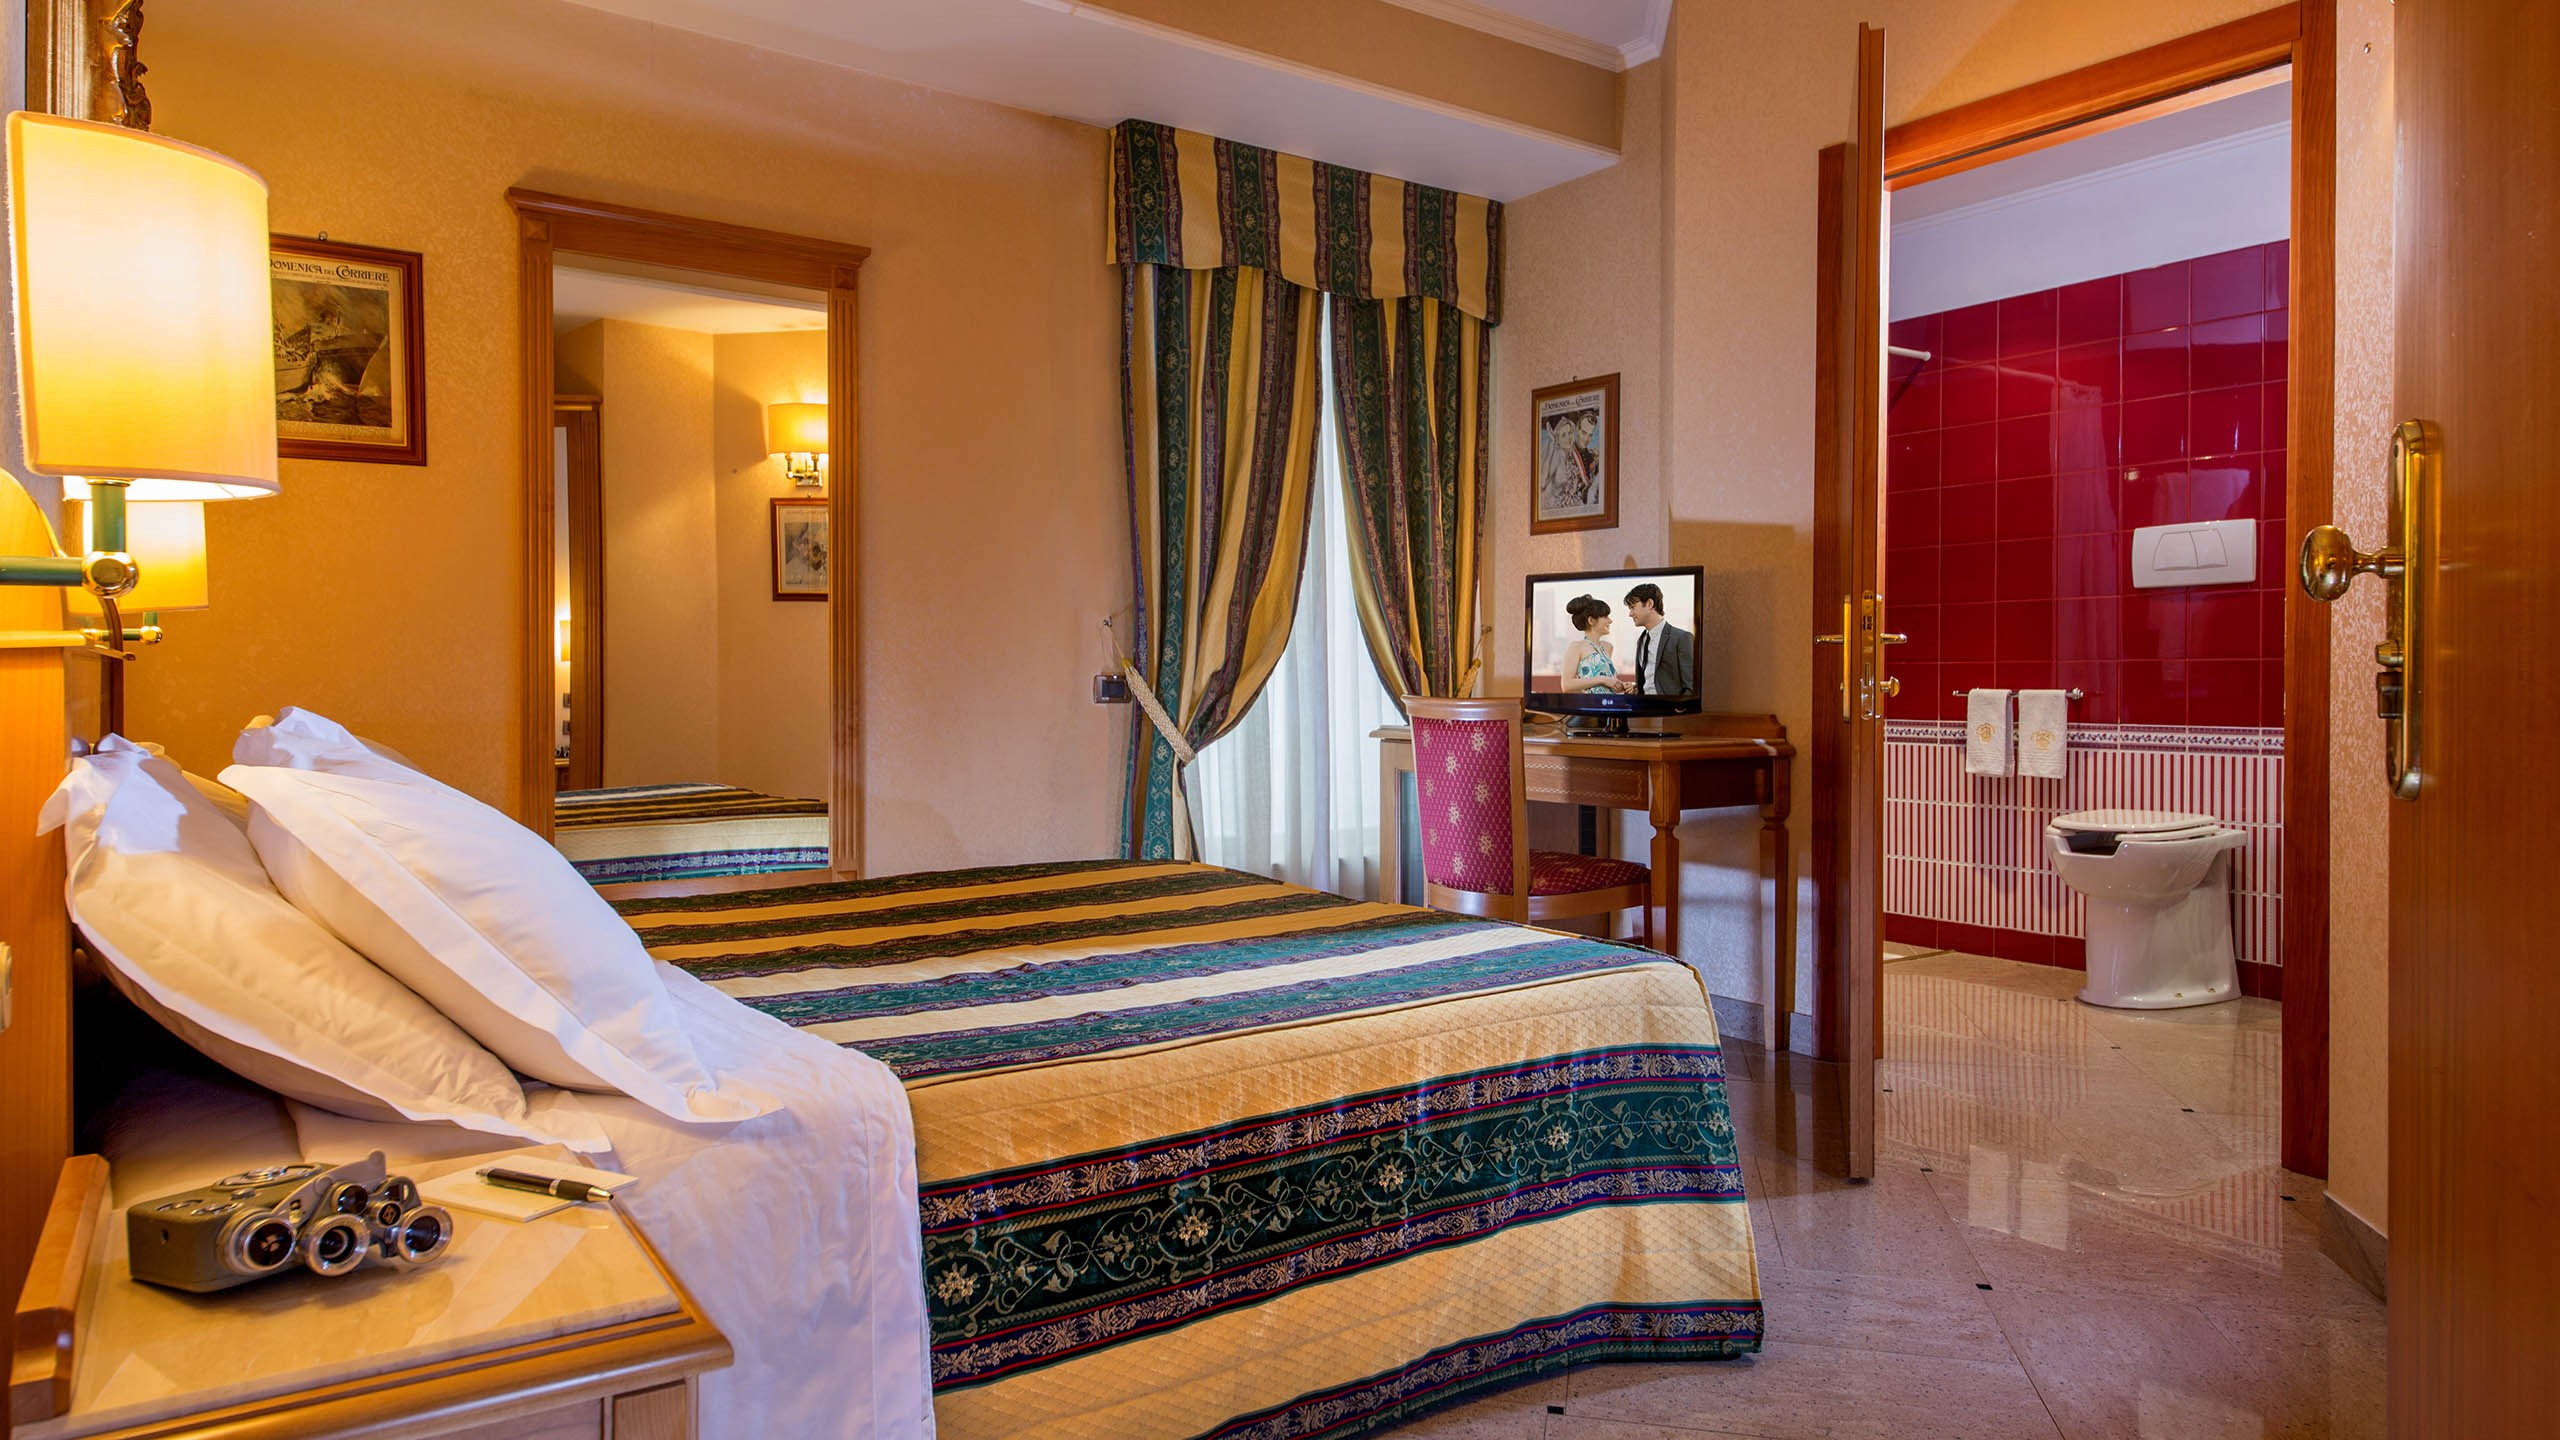 Hotel-Colonna-Frascati-room-for-disabled